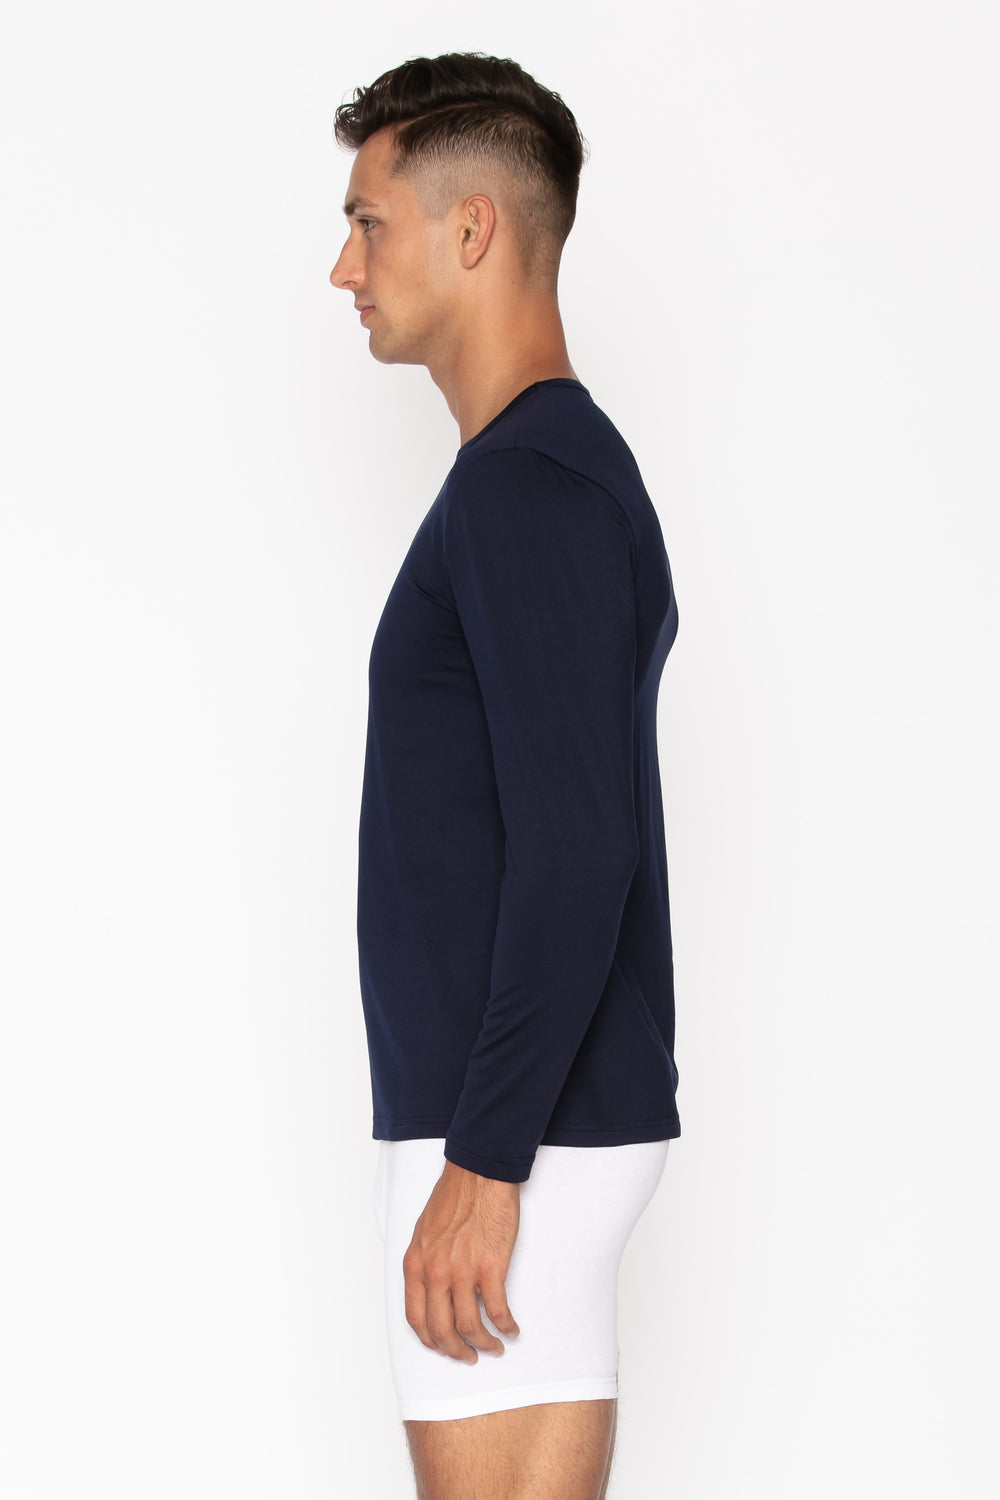 Navy Crew Neck Thermal Shirt for Men's